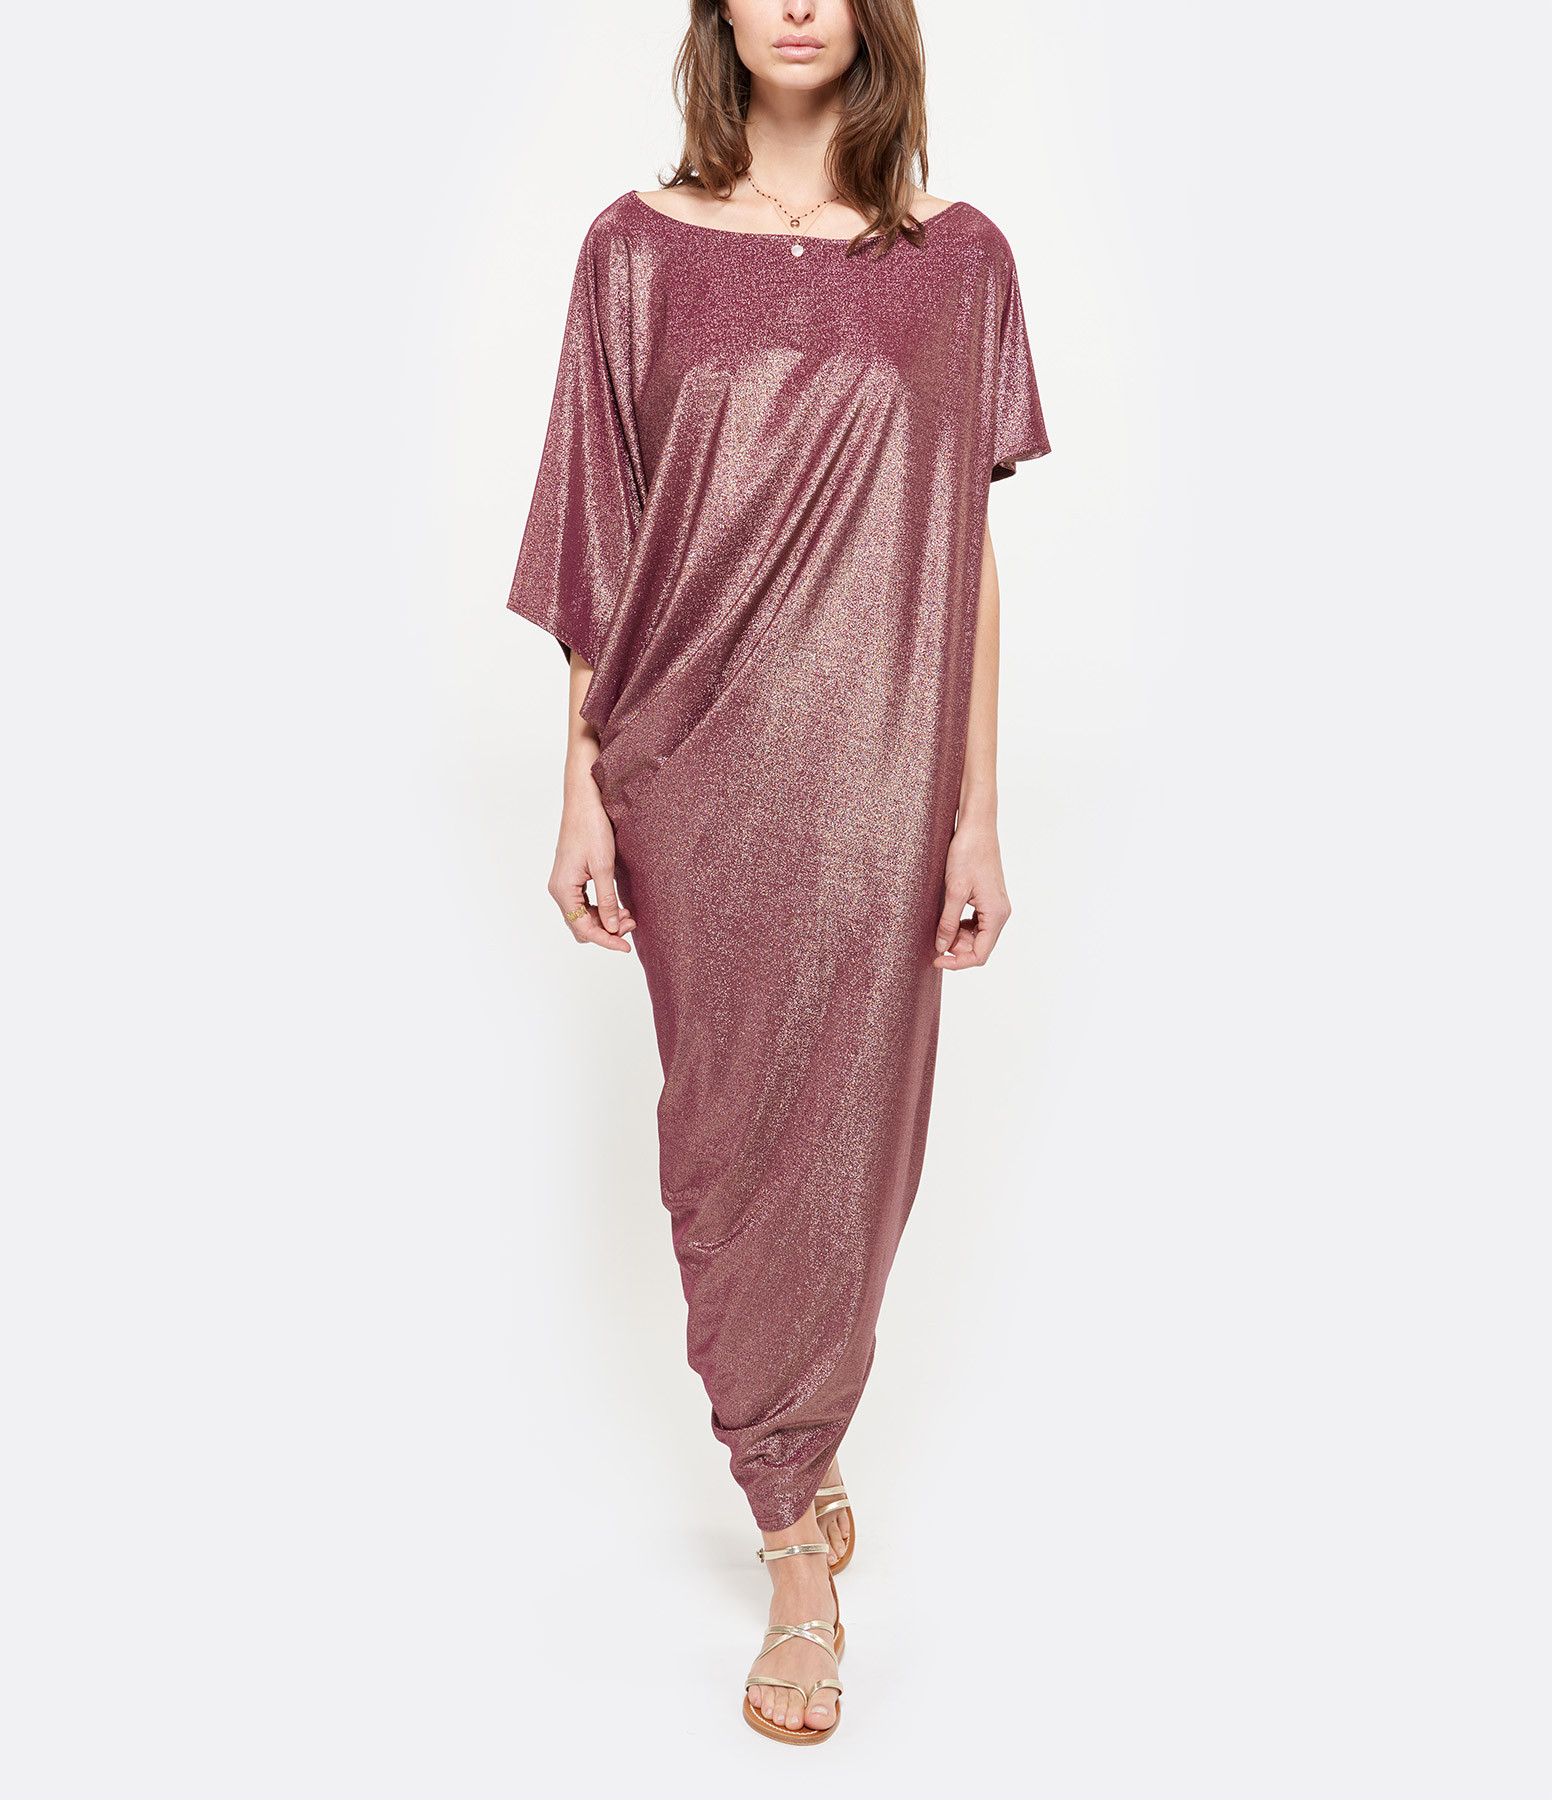 CALARENA - Robe Incontournable Murtoli Lurex Rose Malva